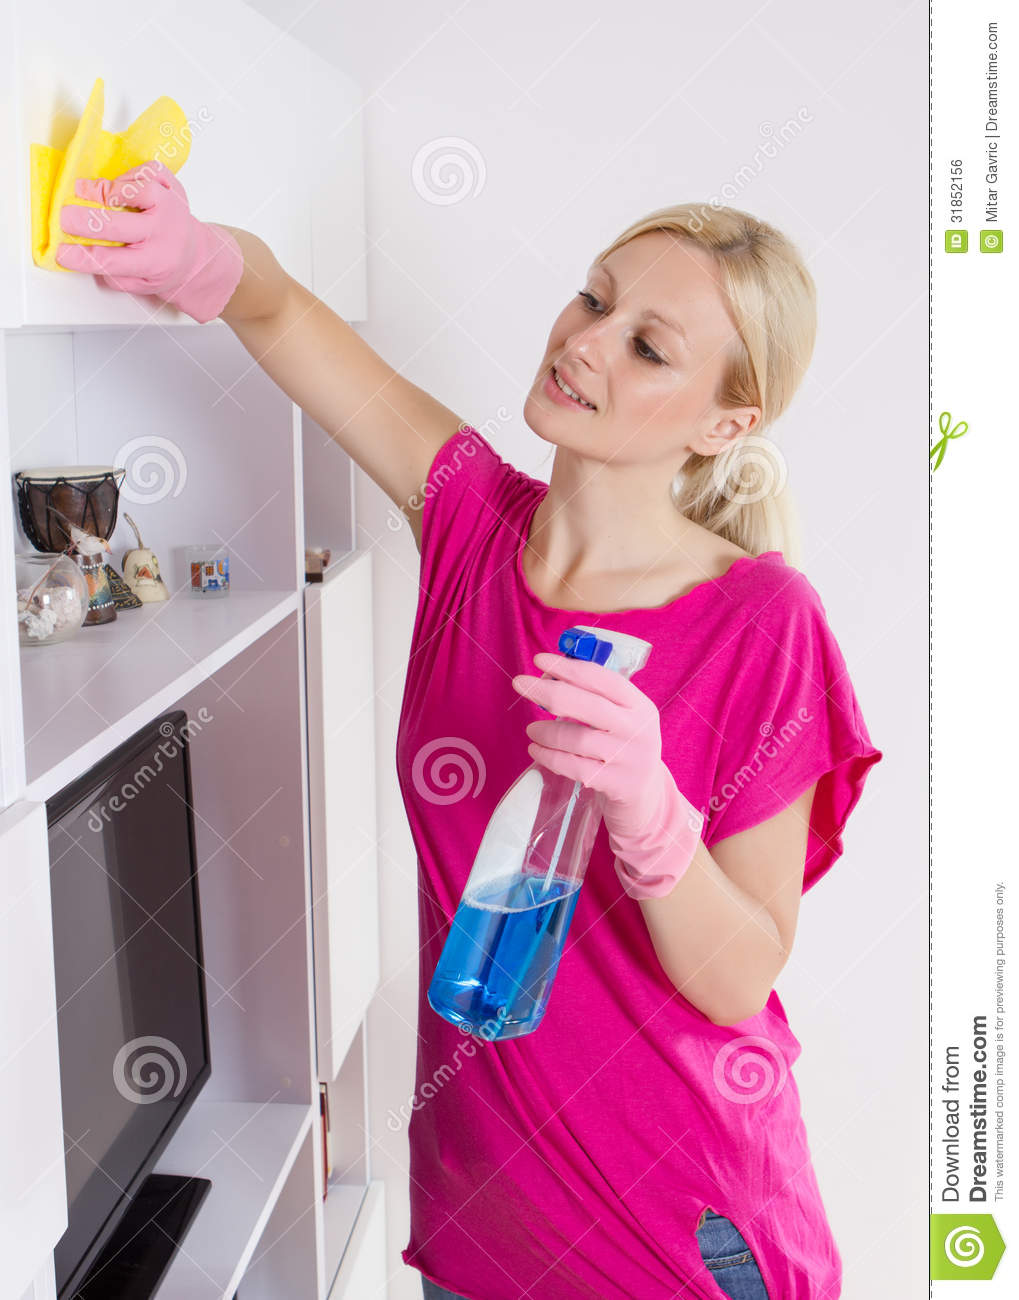 Woman Cleaning Home Royalty Free Stock Image   Image  31852156